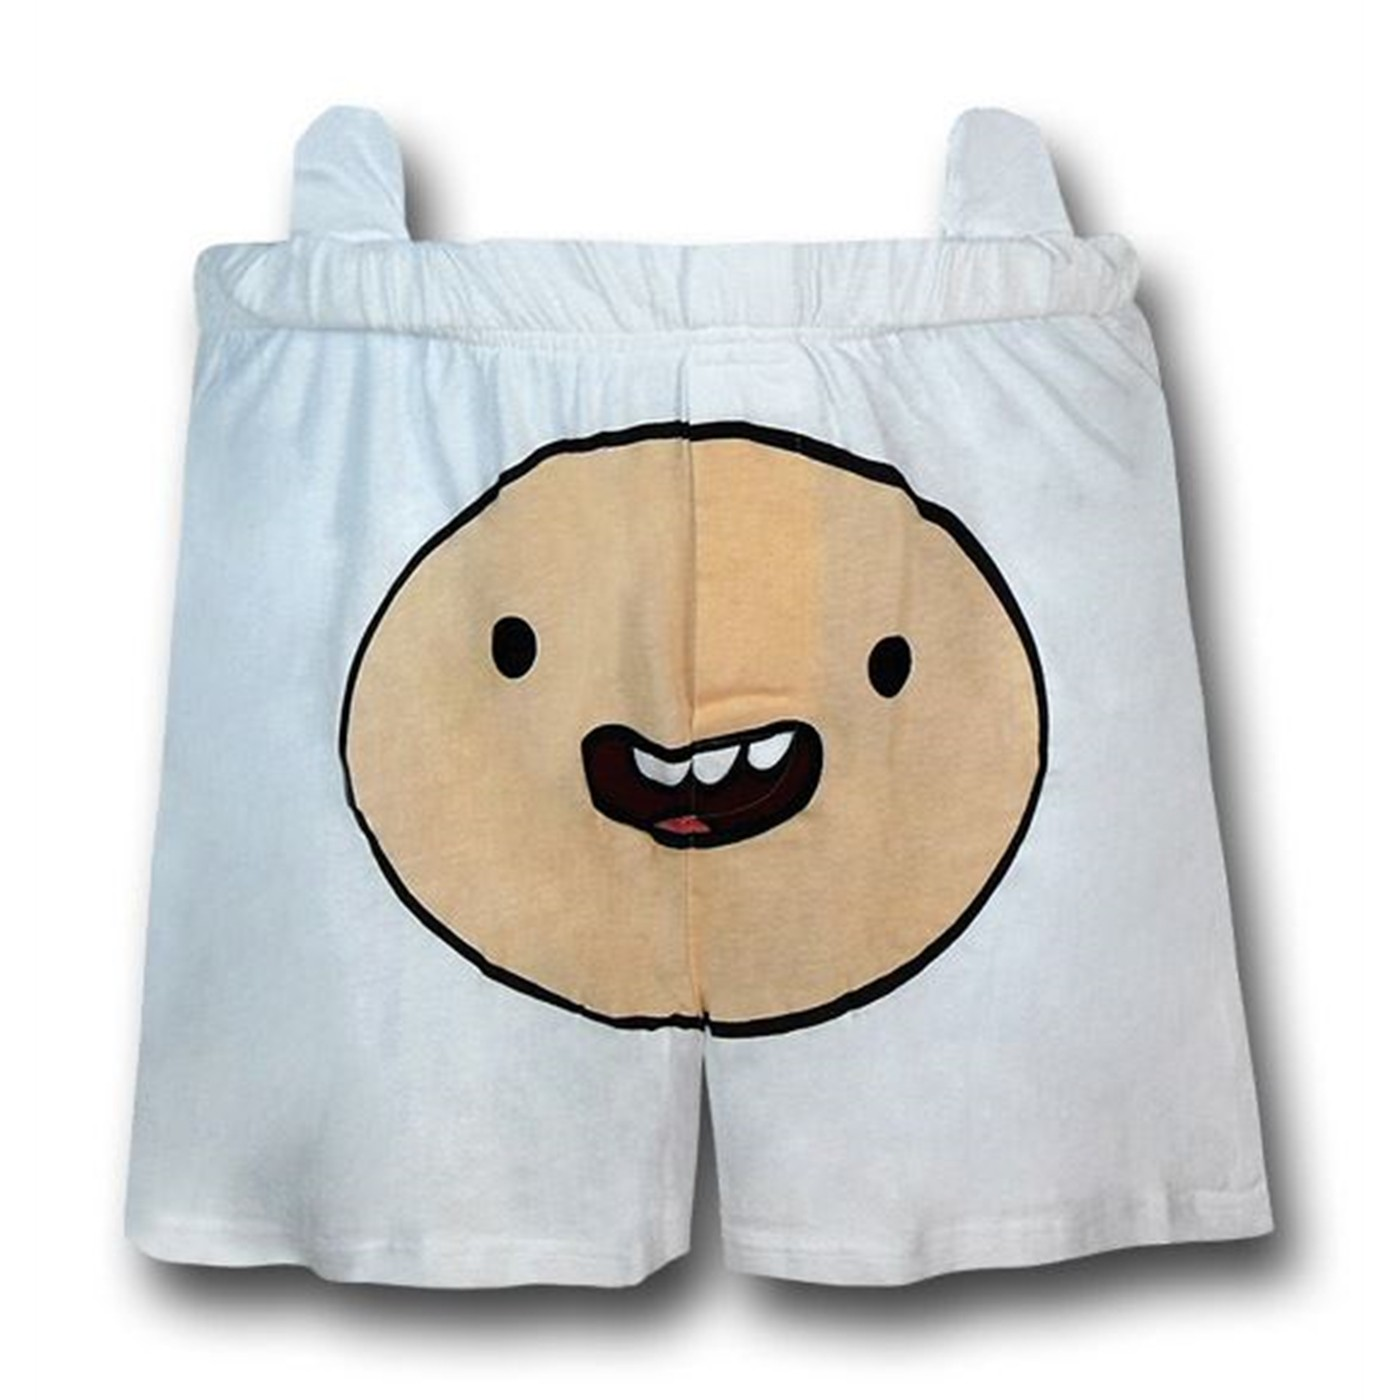 Adventure Time Finn Face Boxers